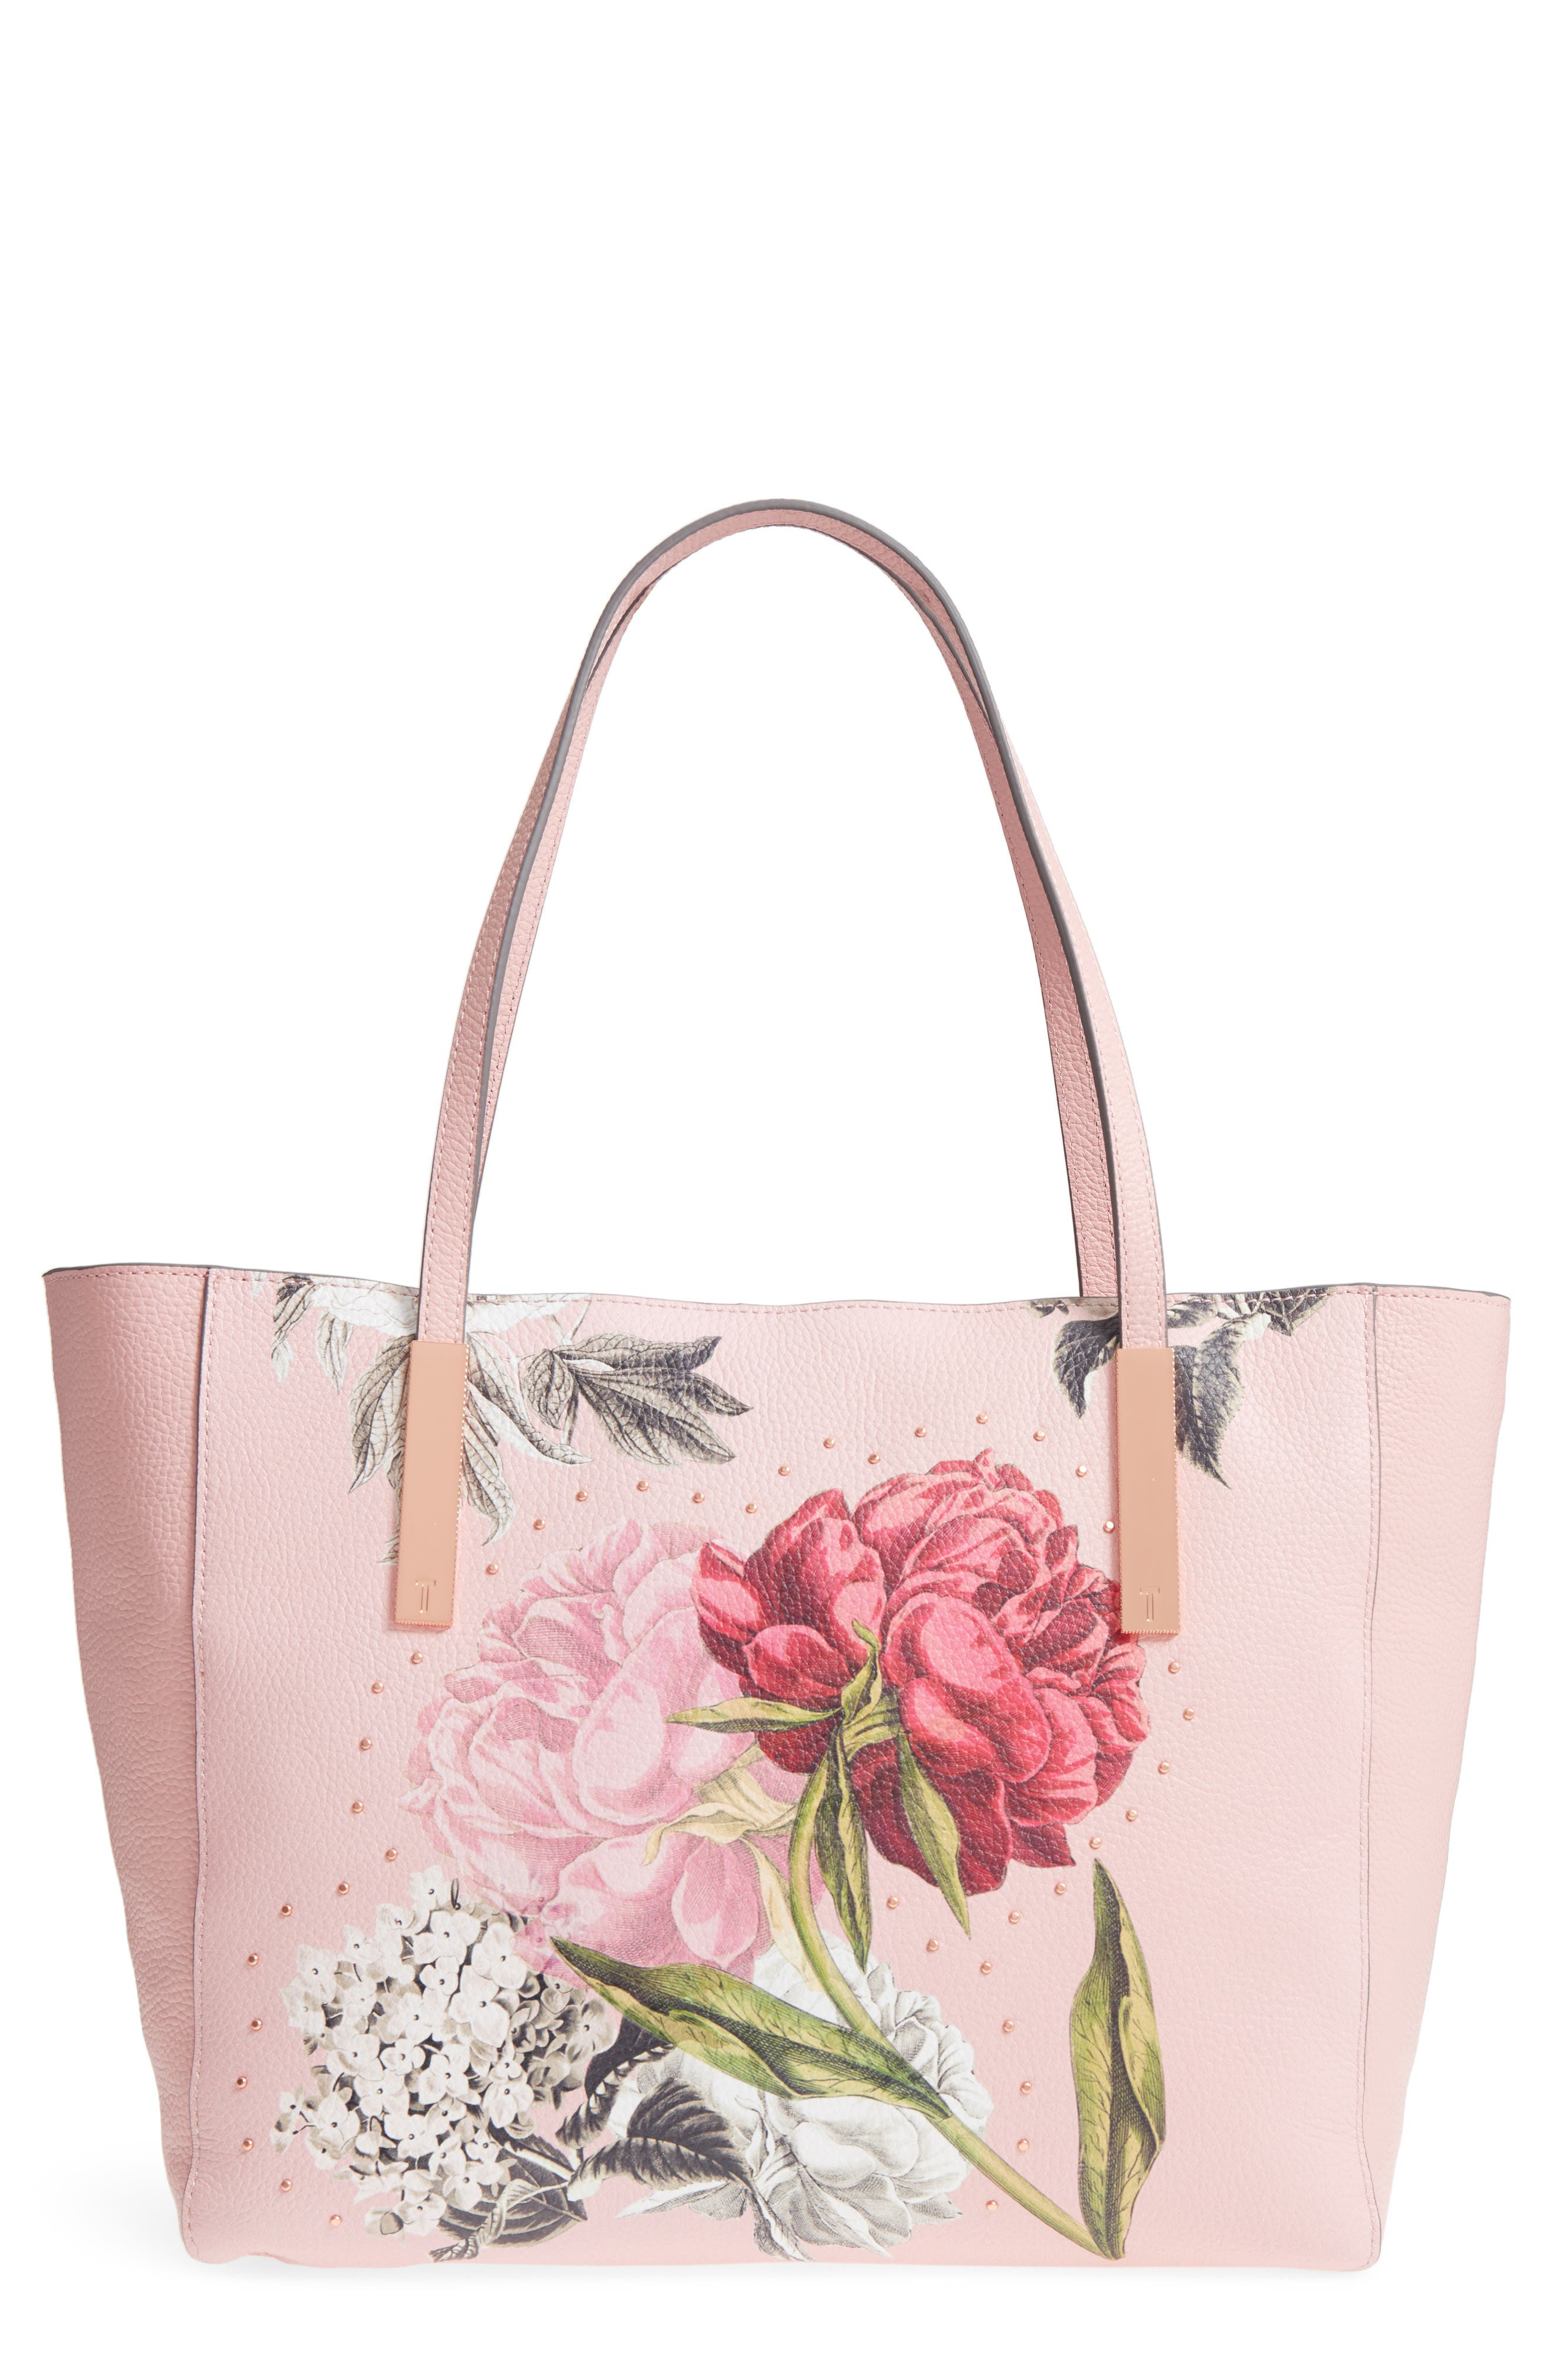 Palace Gardens Large Leather Tote,                         Main,                         color, Dusky Pink